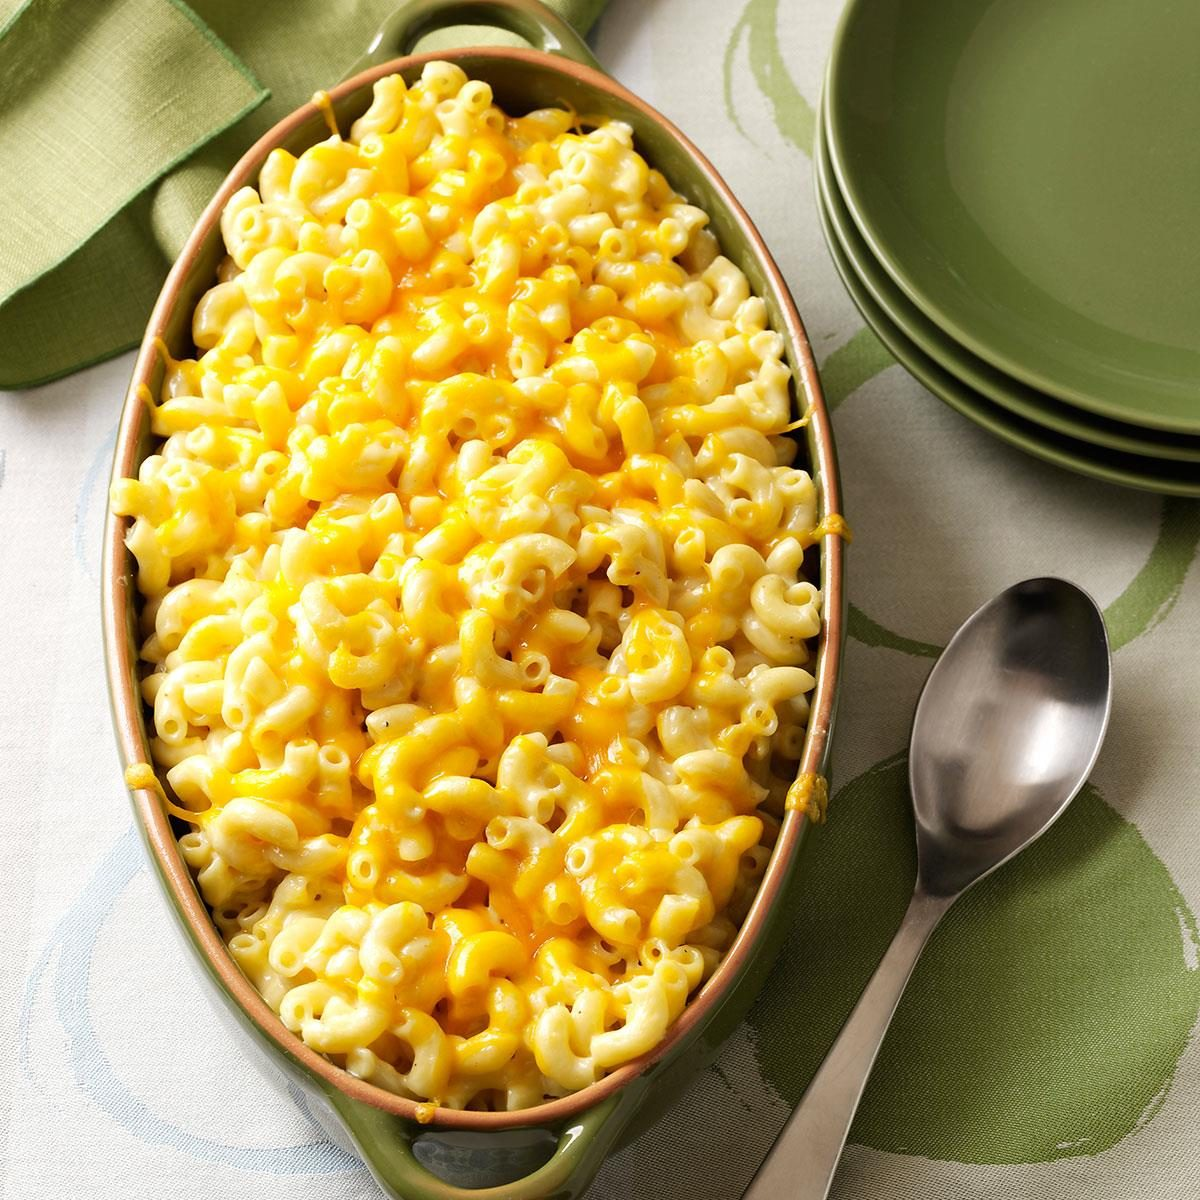 Over-the-top Mac n' cheese